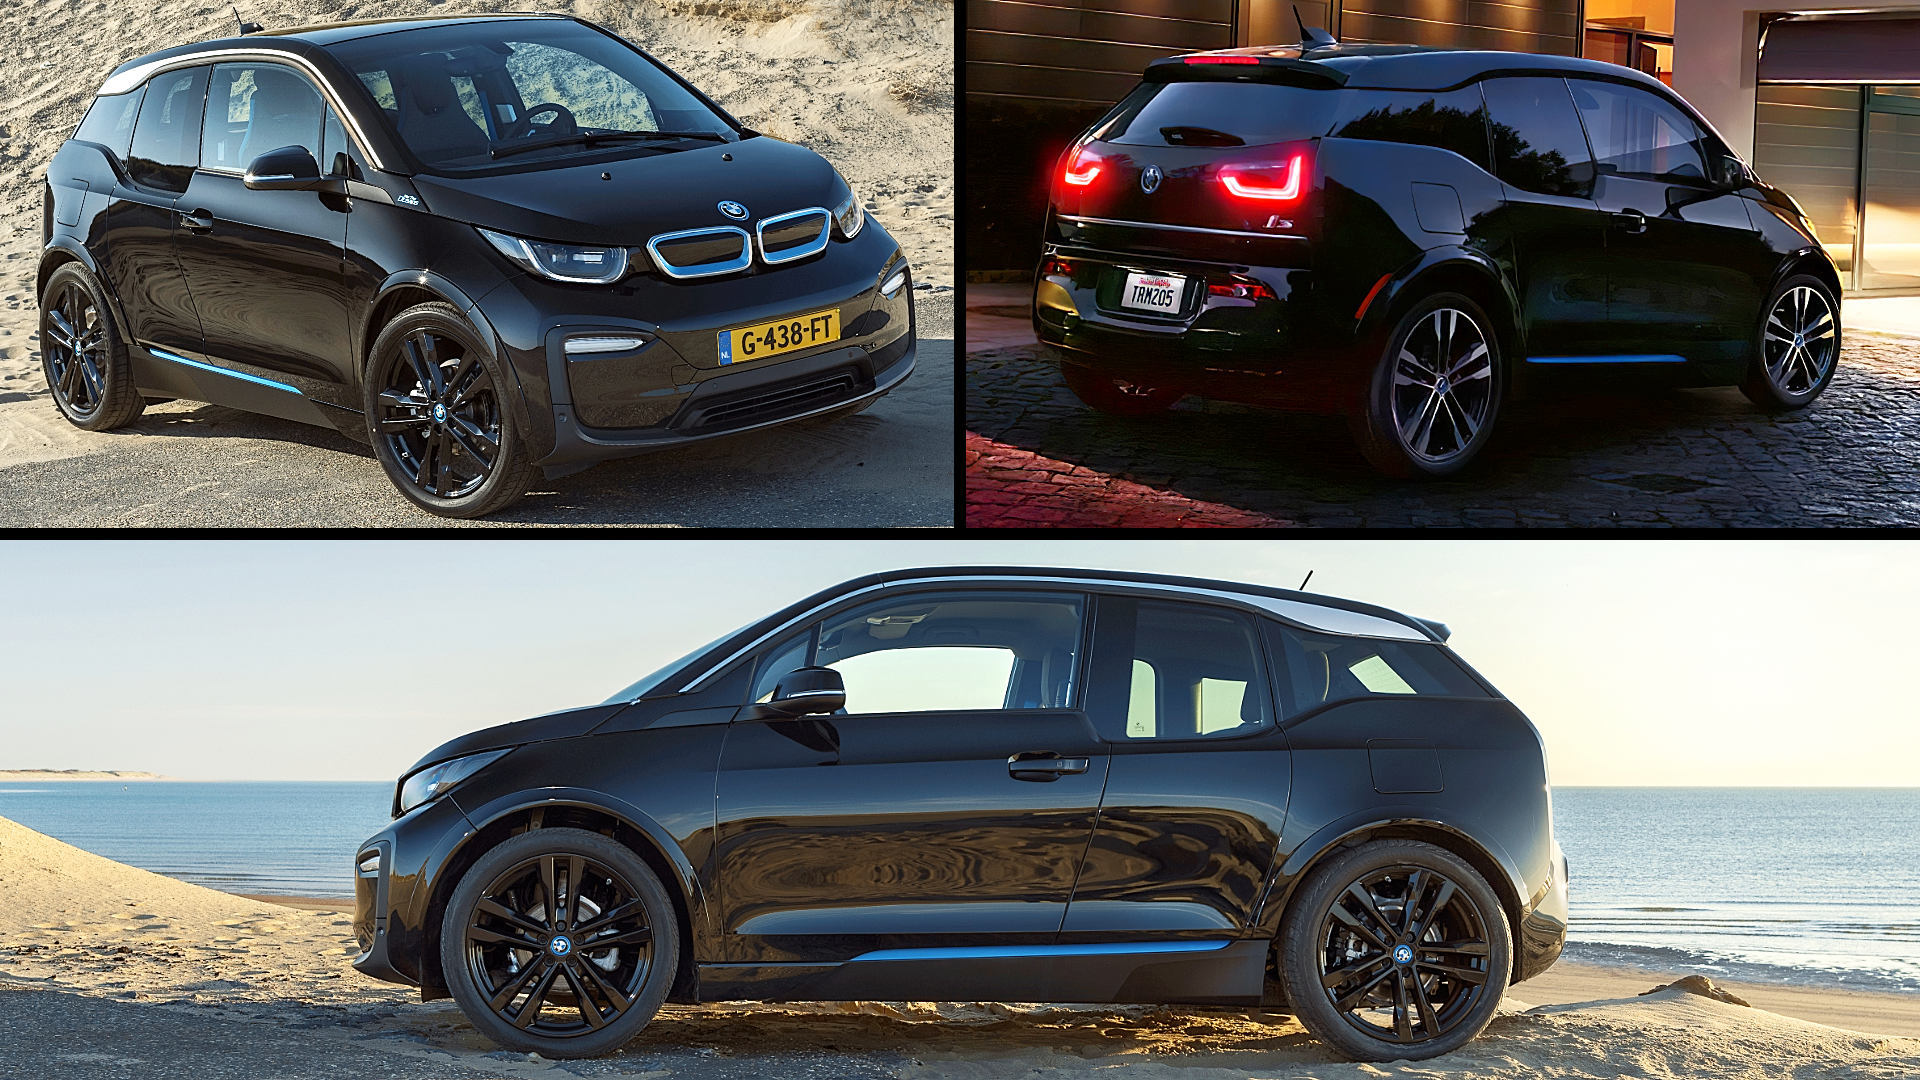 2021 BMW i3 Electric Sedan Images